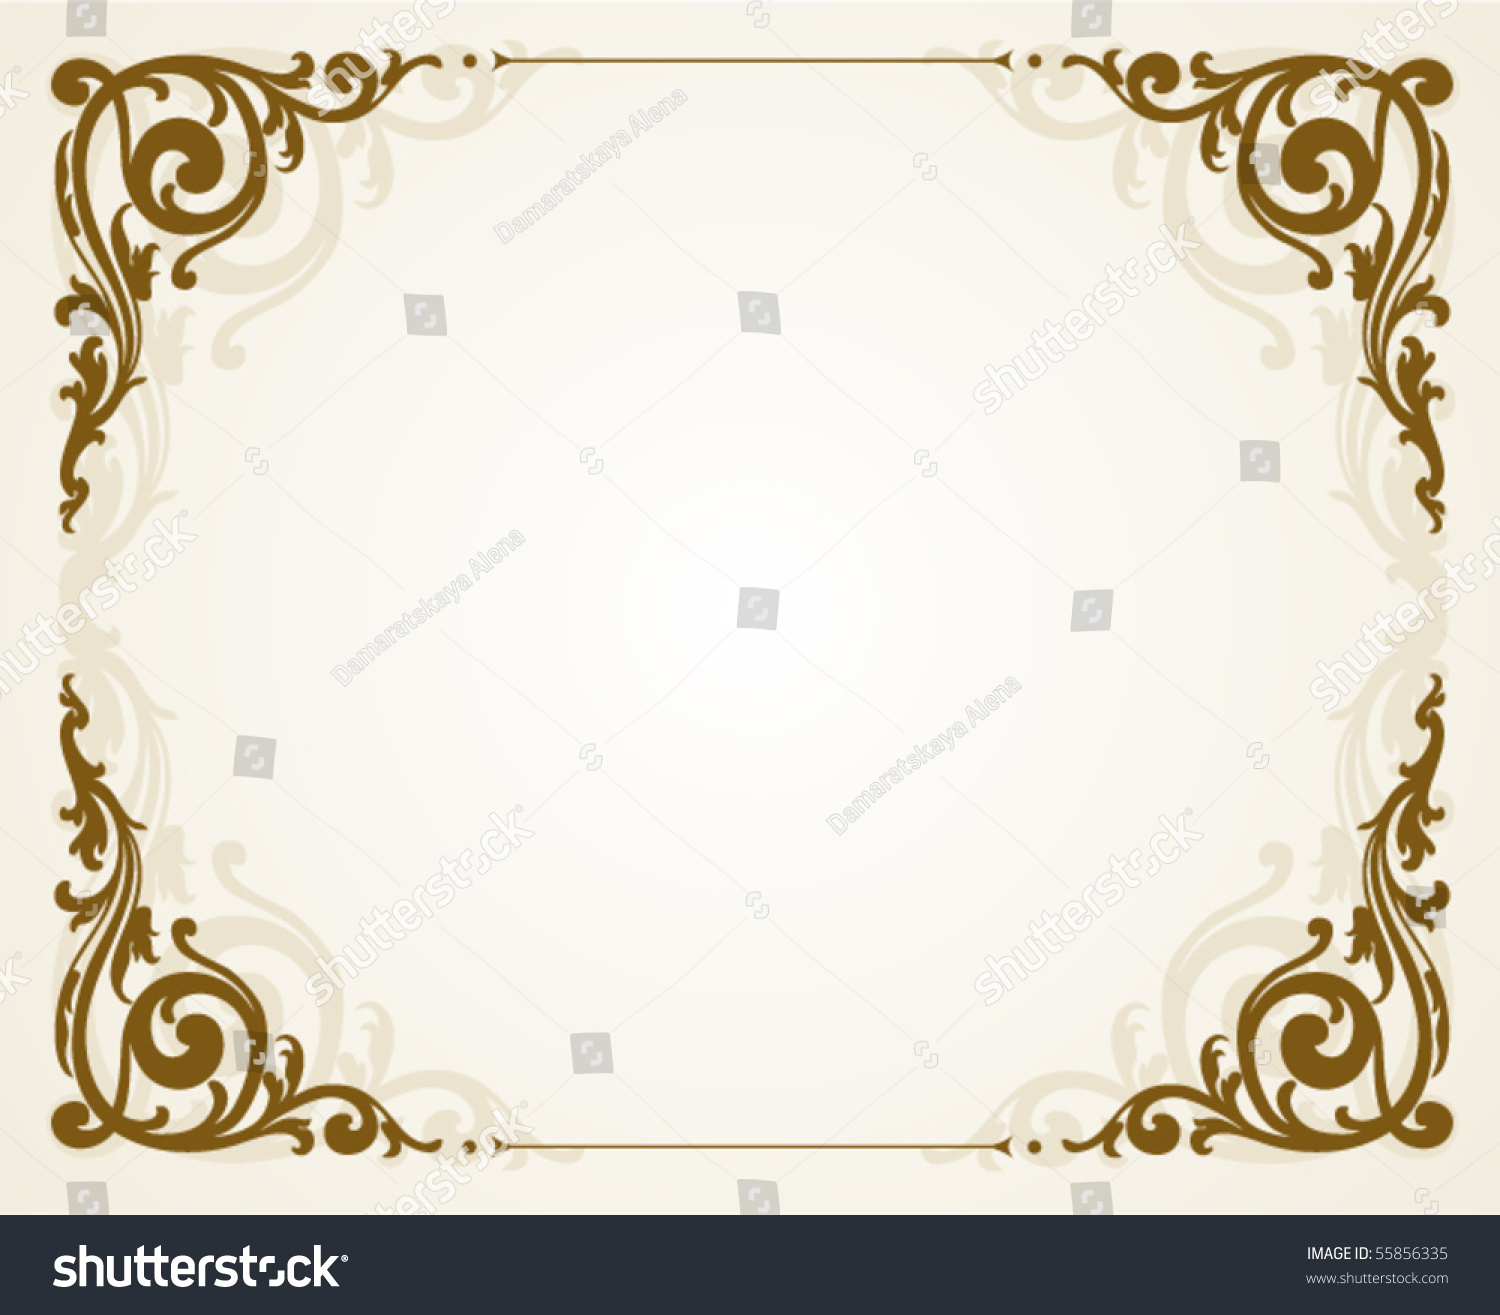 Antique frame vintage style stock vector 55856335 for Small vintage style picture frames